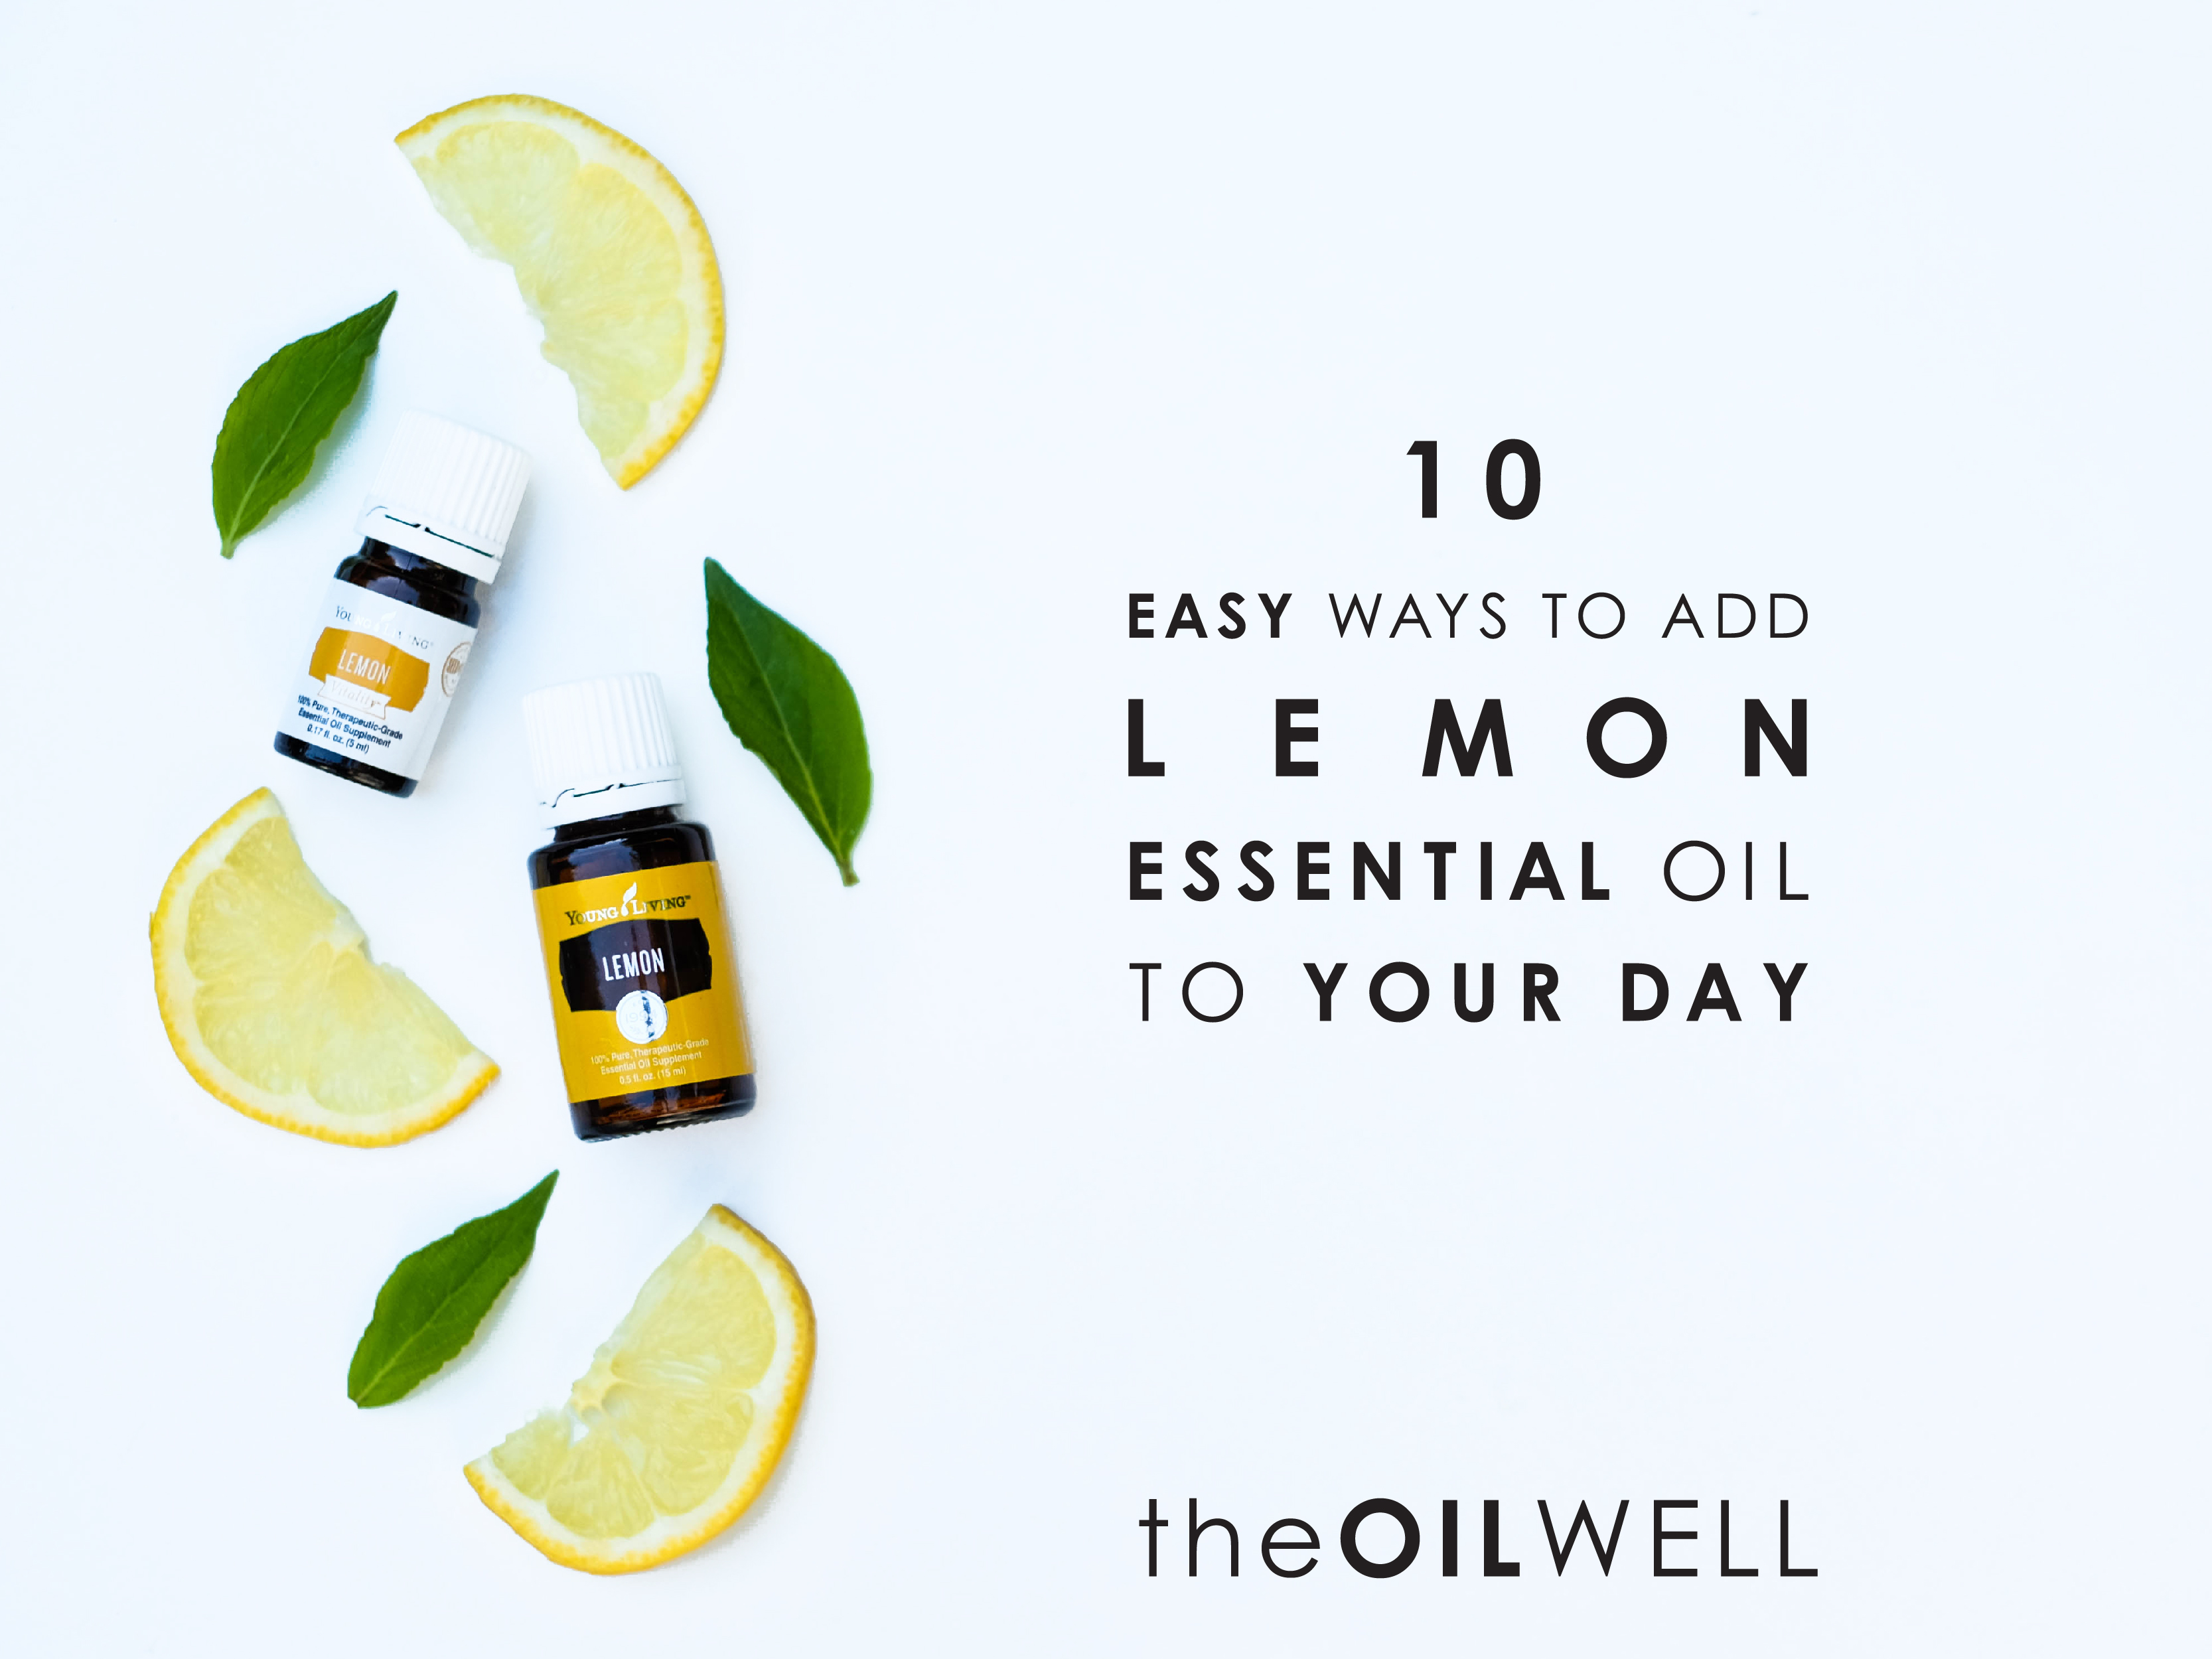 10 Easy Ways to Add Lemon Essential Oil To Your Day